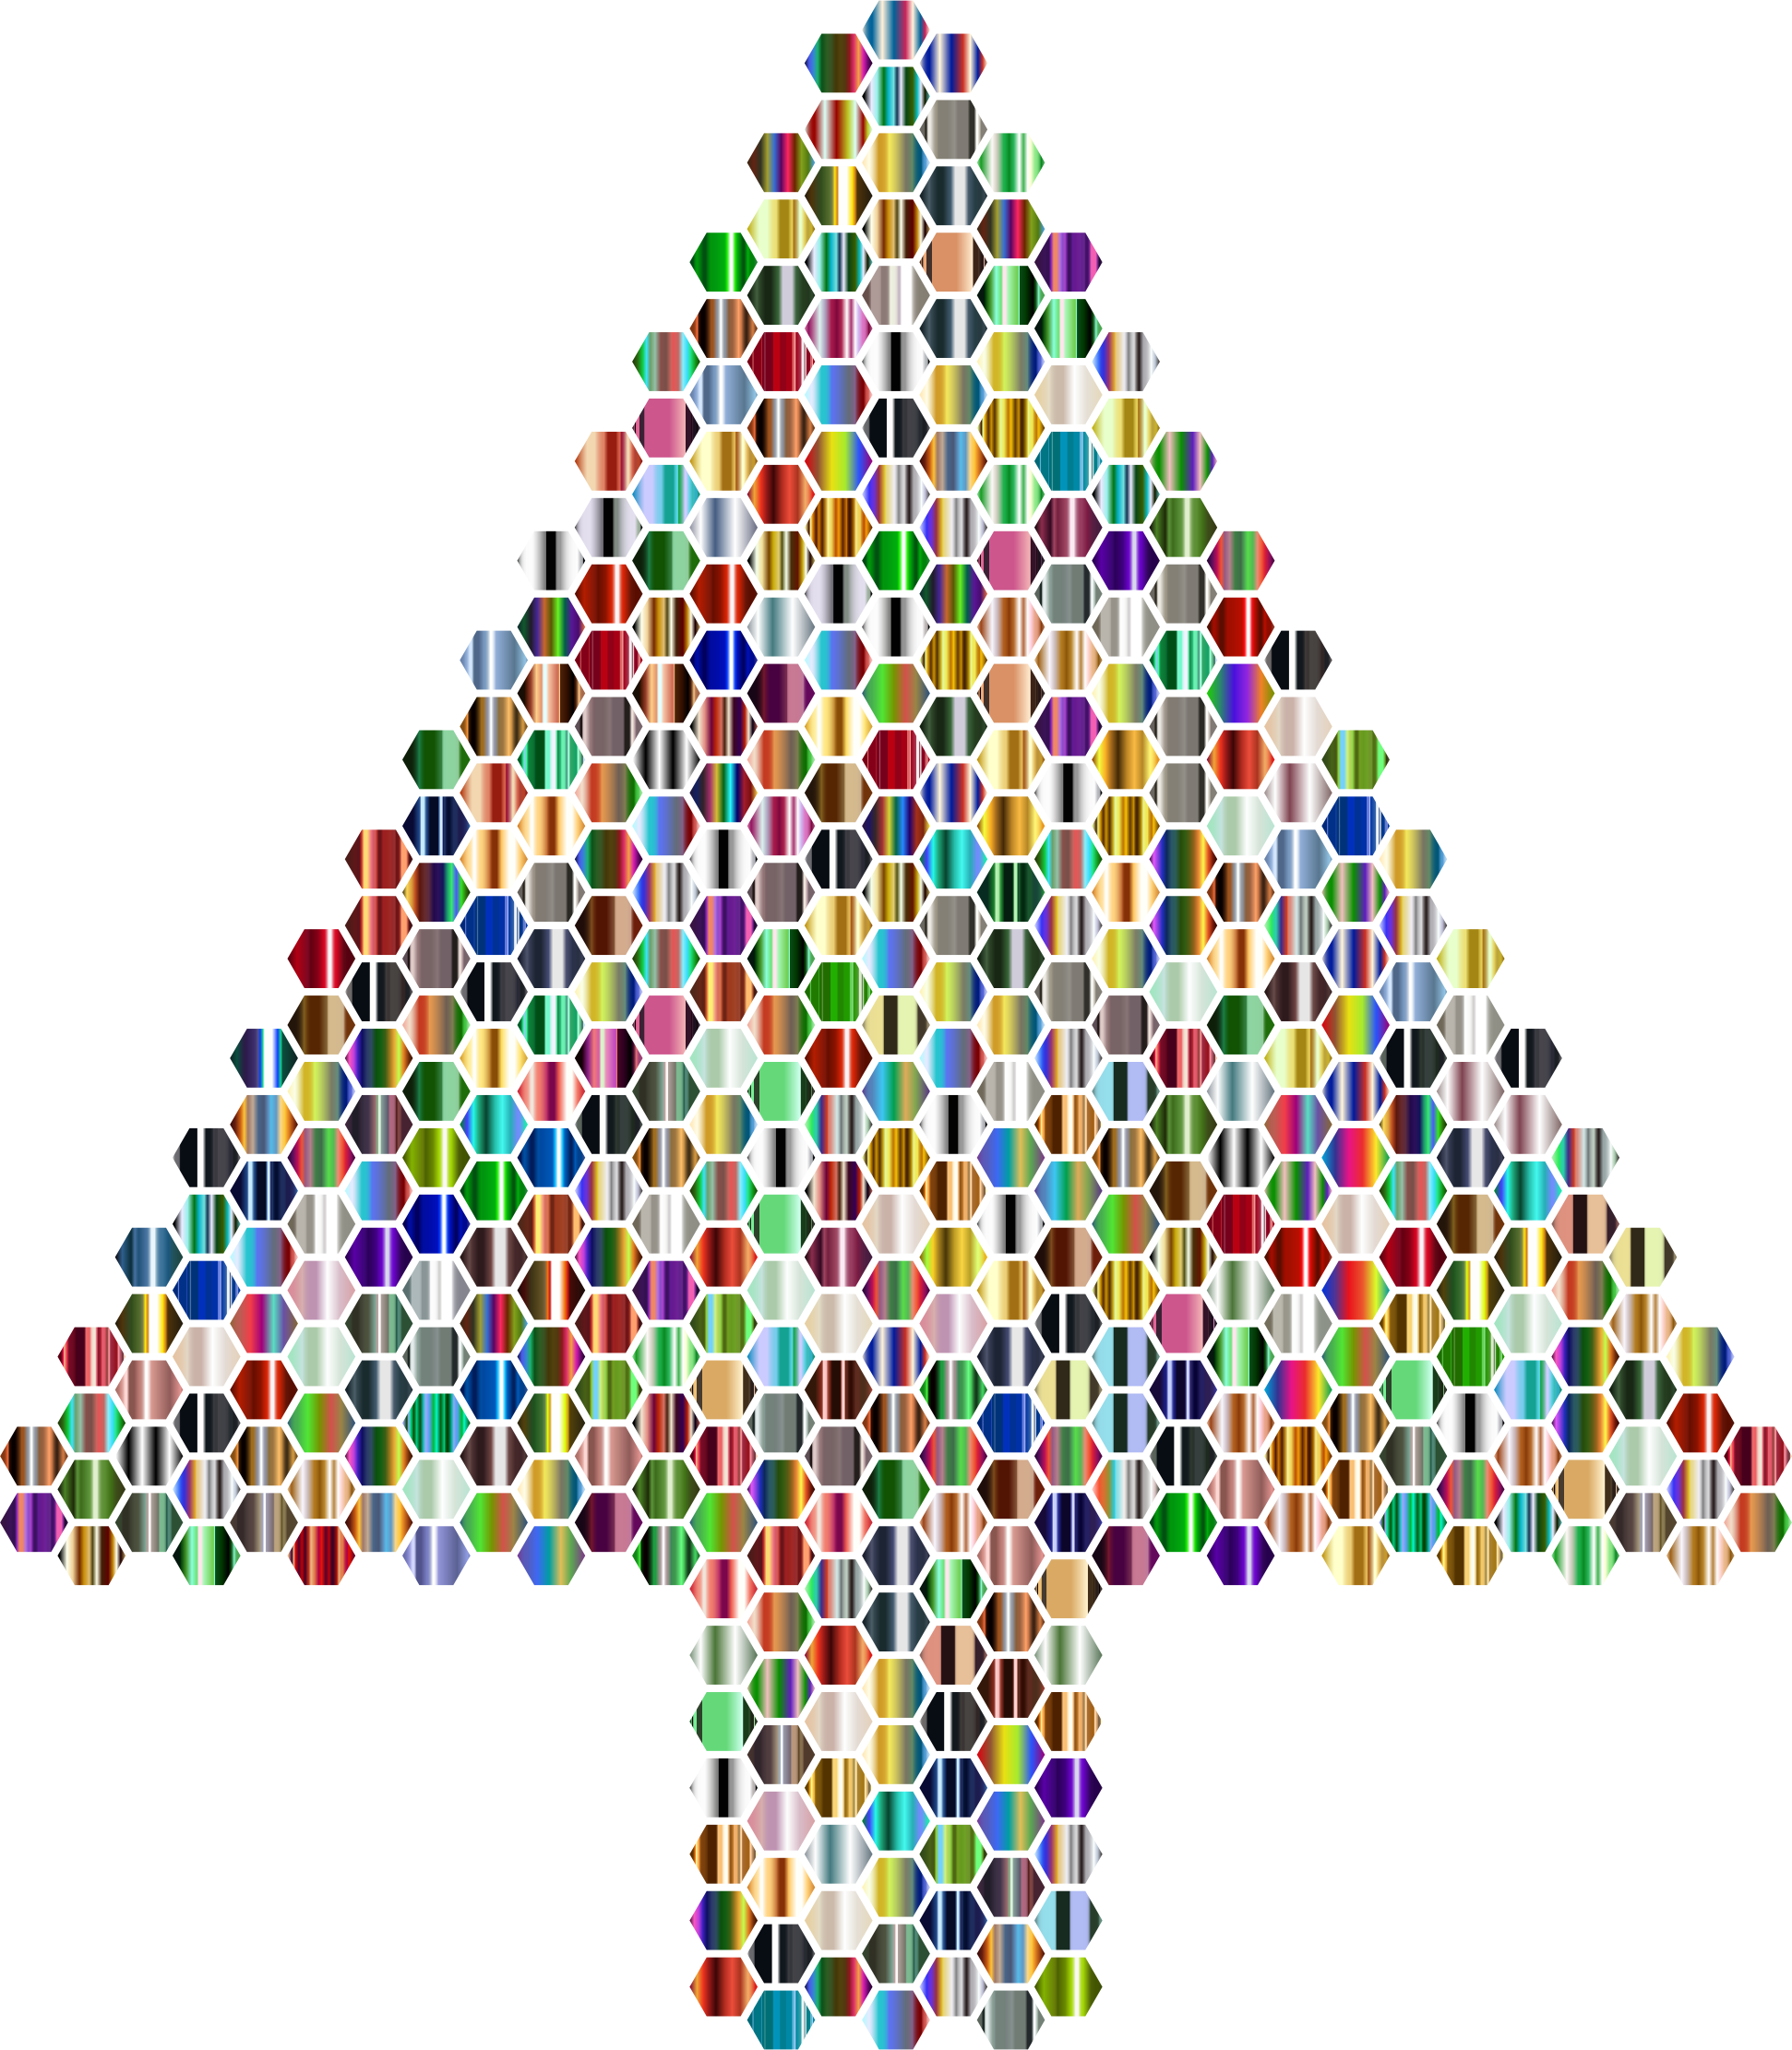 Prismatic Hexagonal Abstract Christmas Tree 6 by GDJ